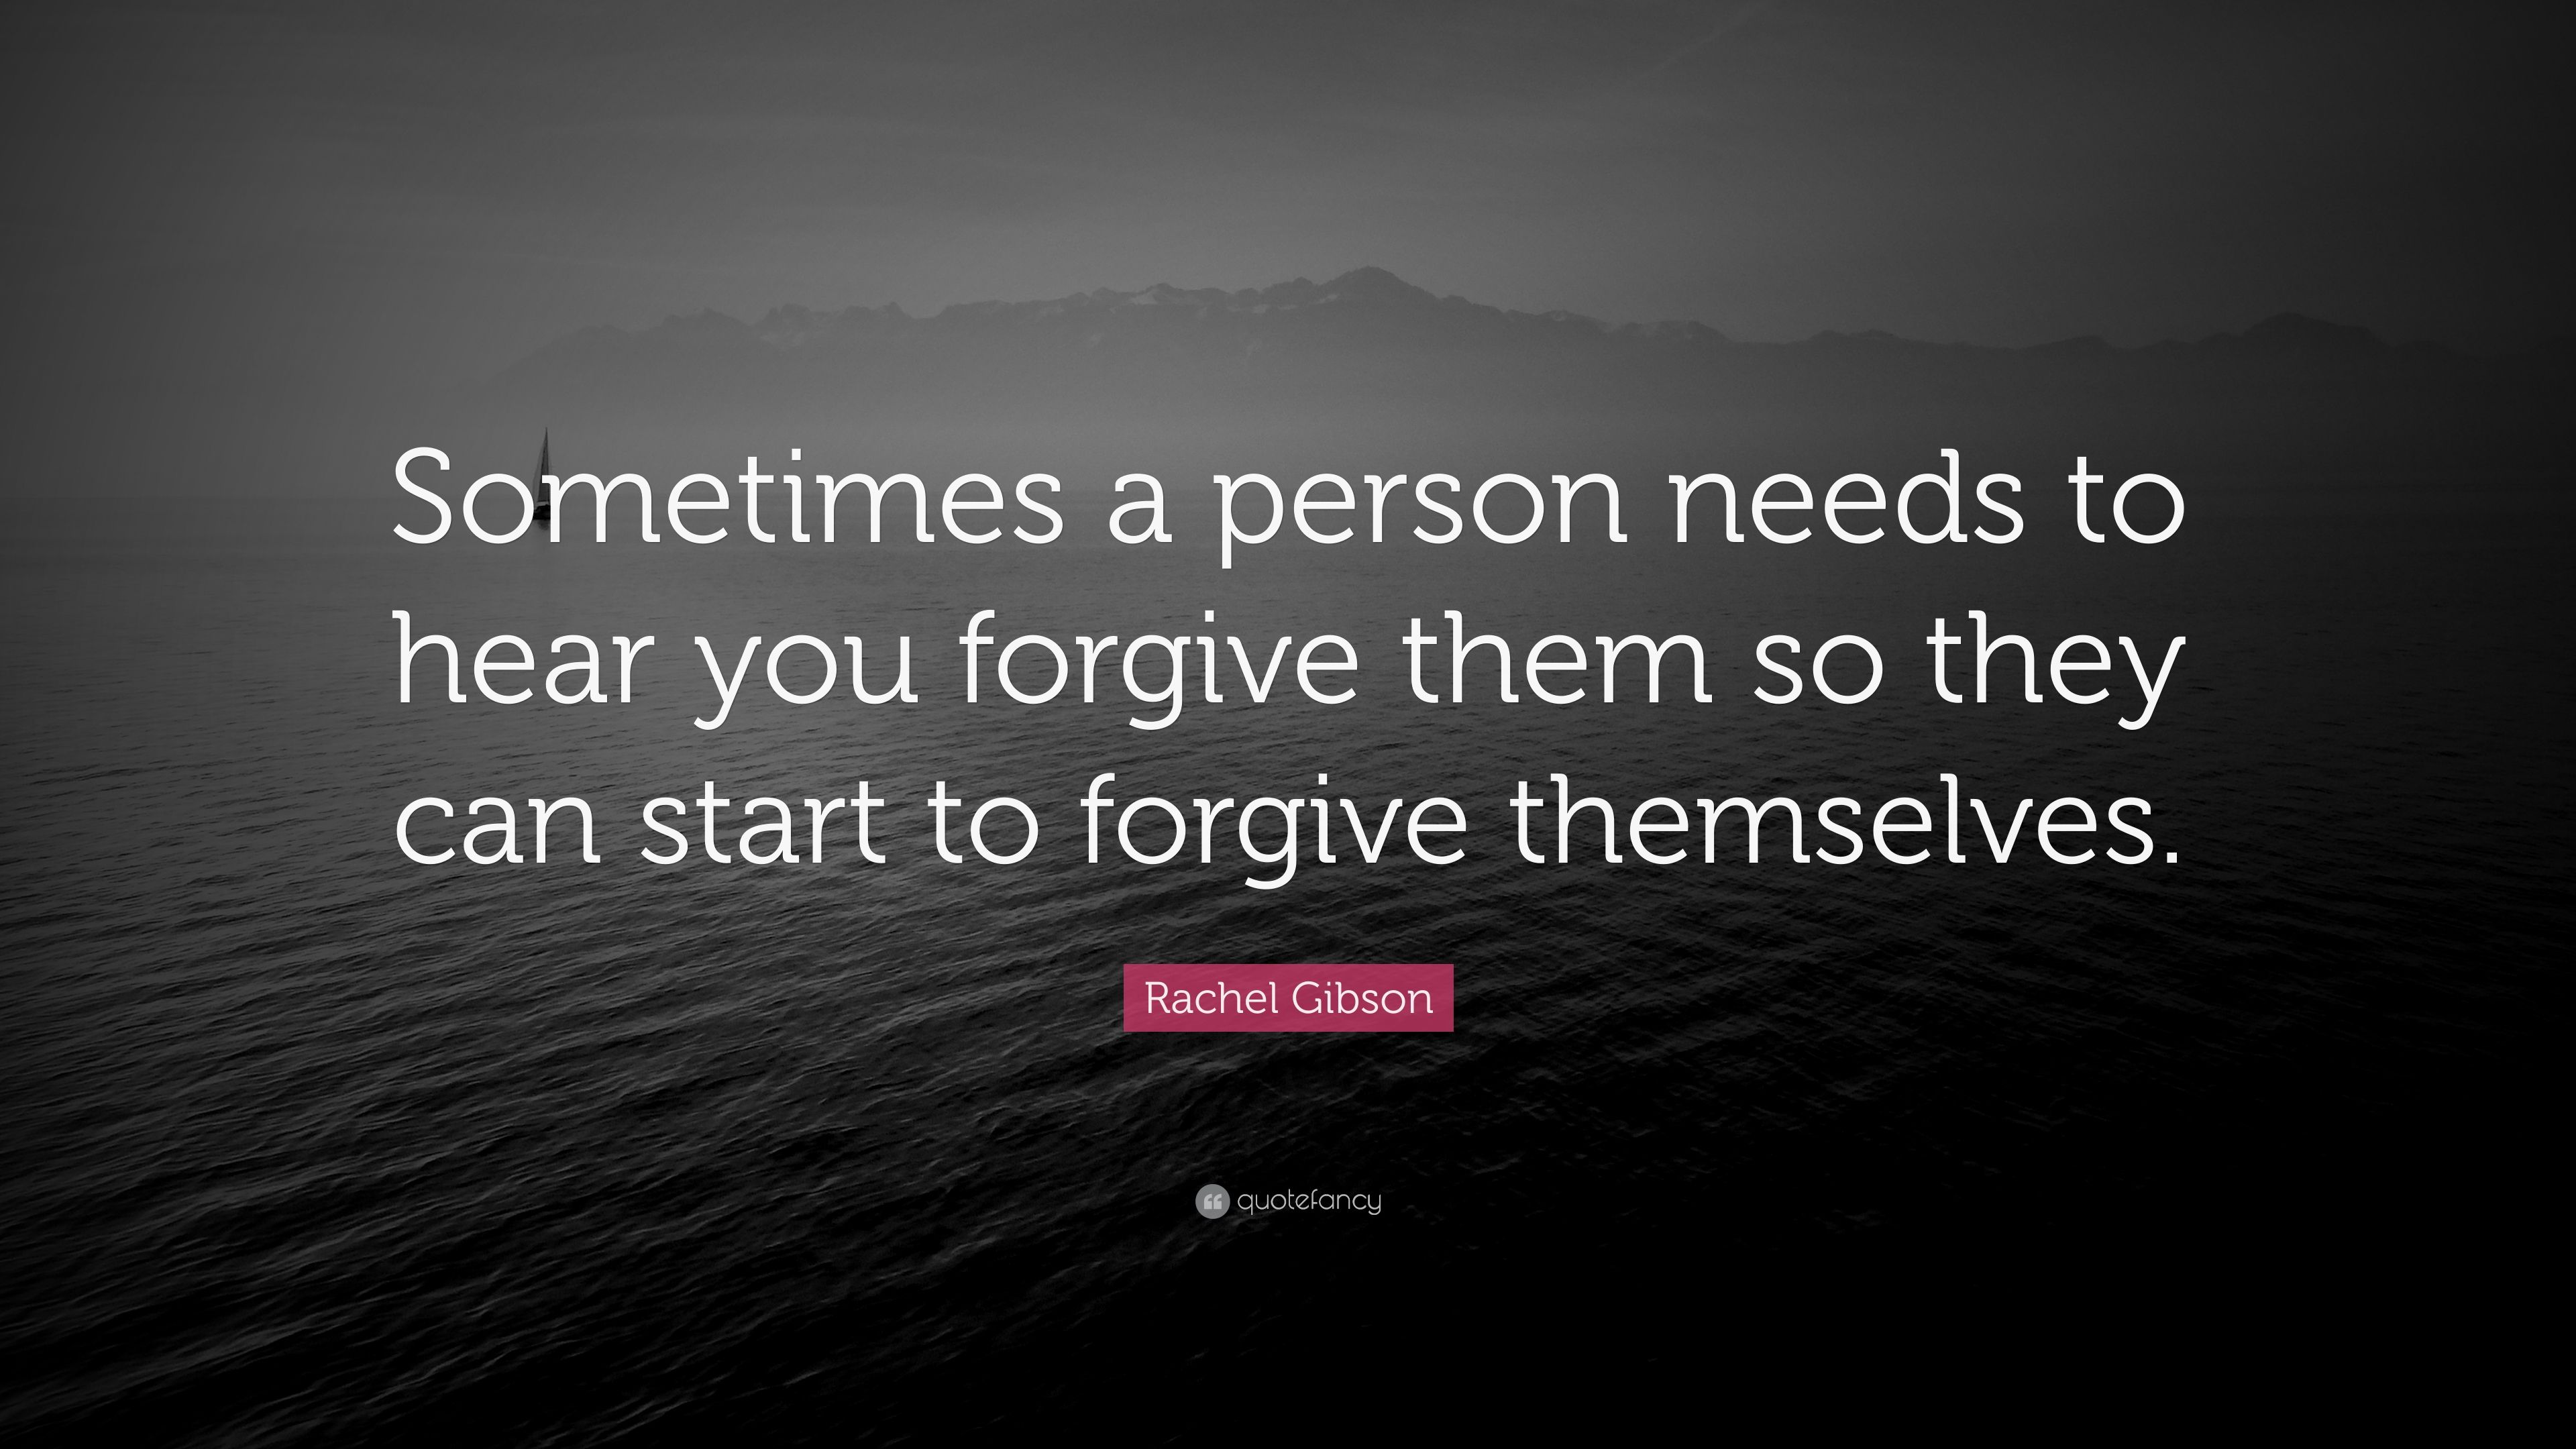 photo How you can start to forgive